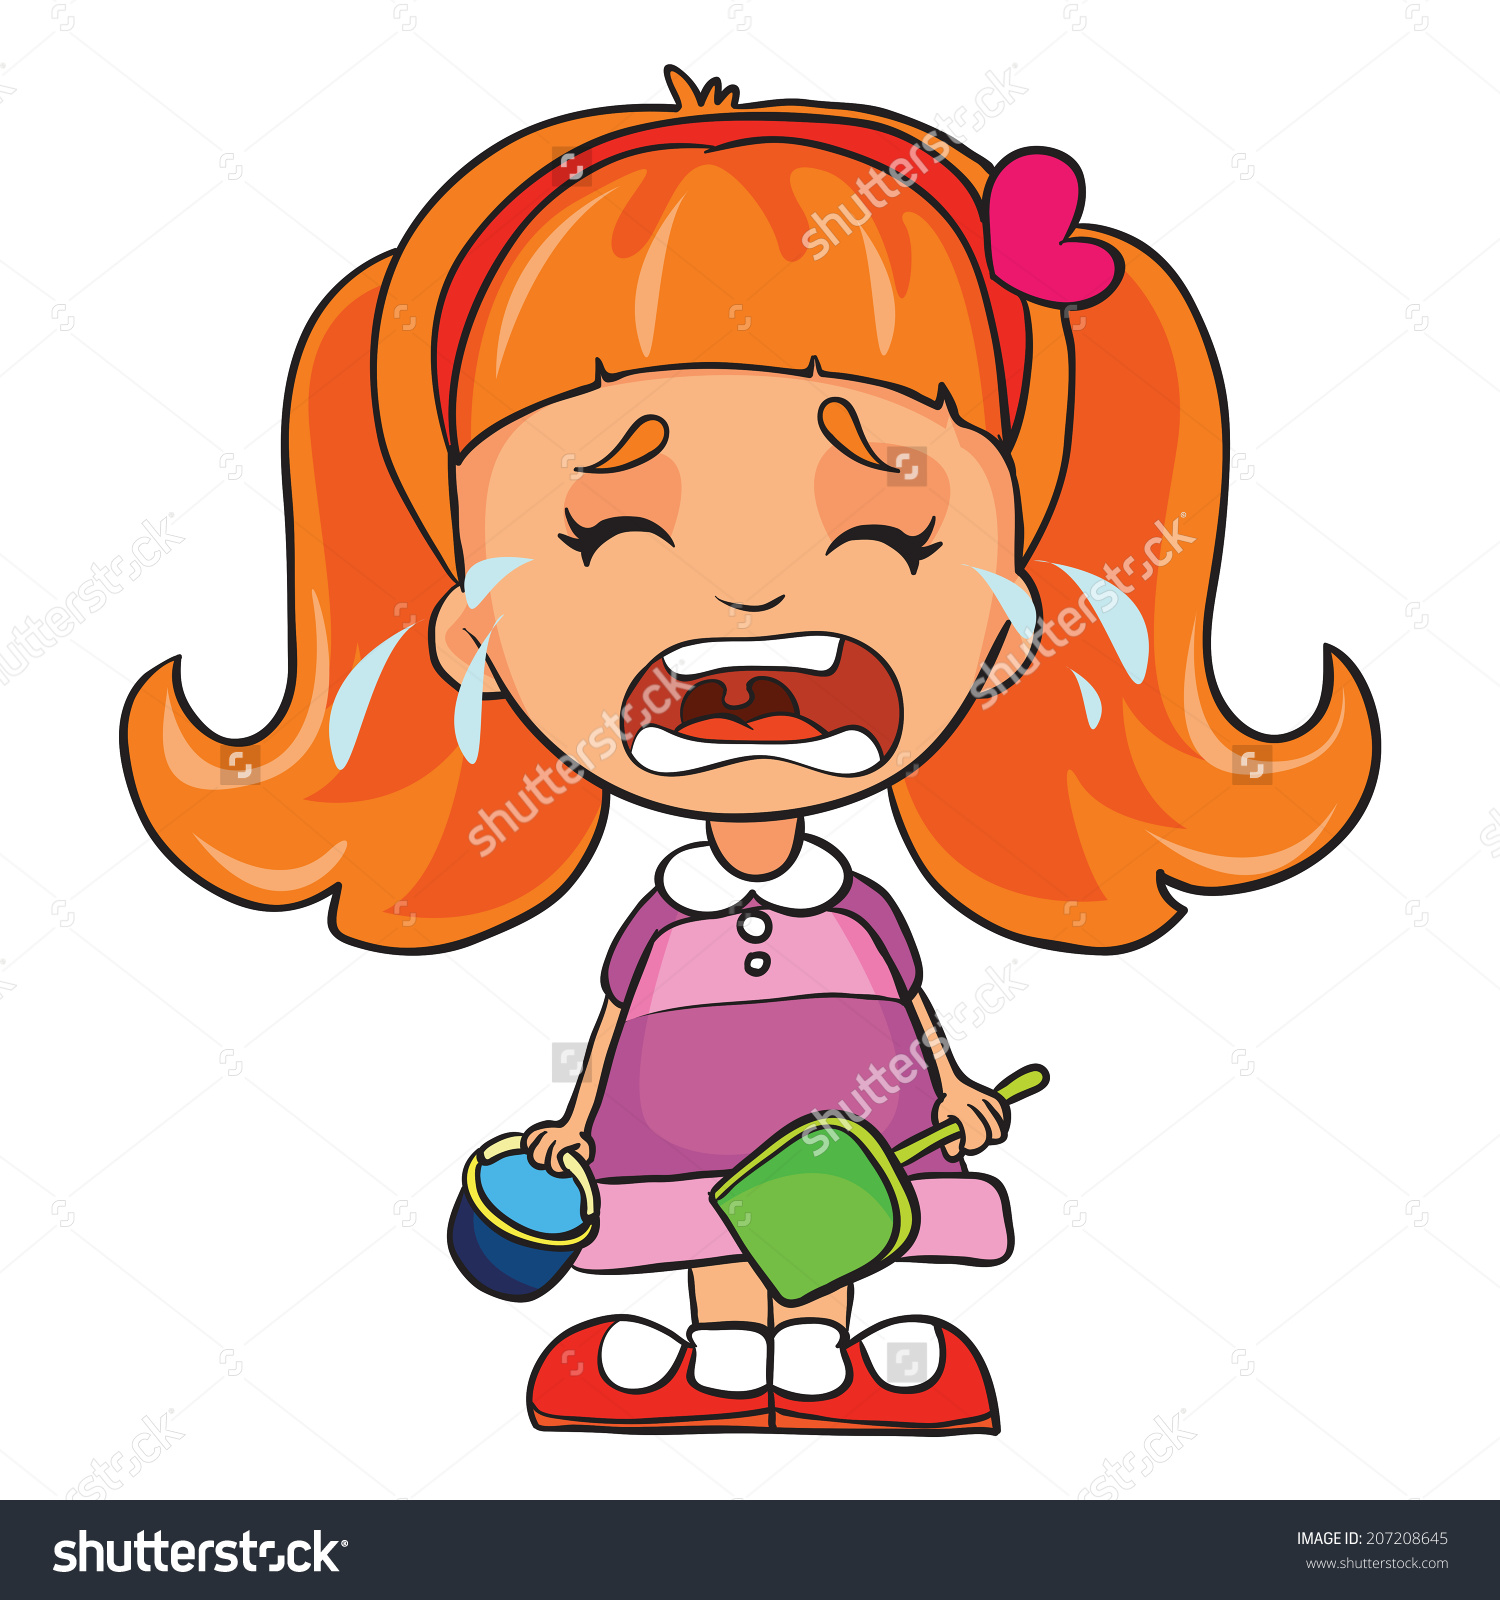 Crying girl clipart 6 » Clipart Station.